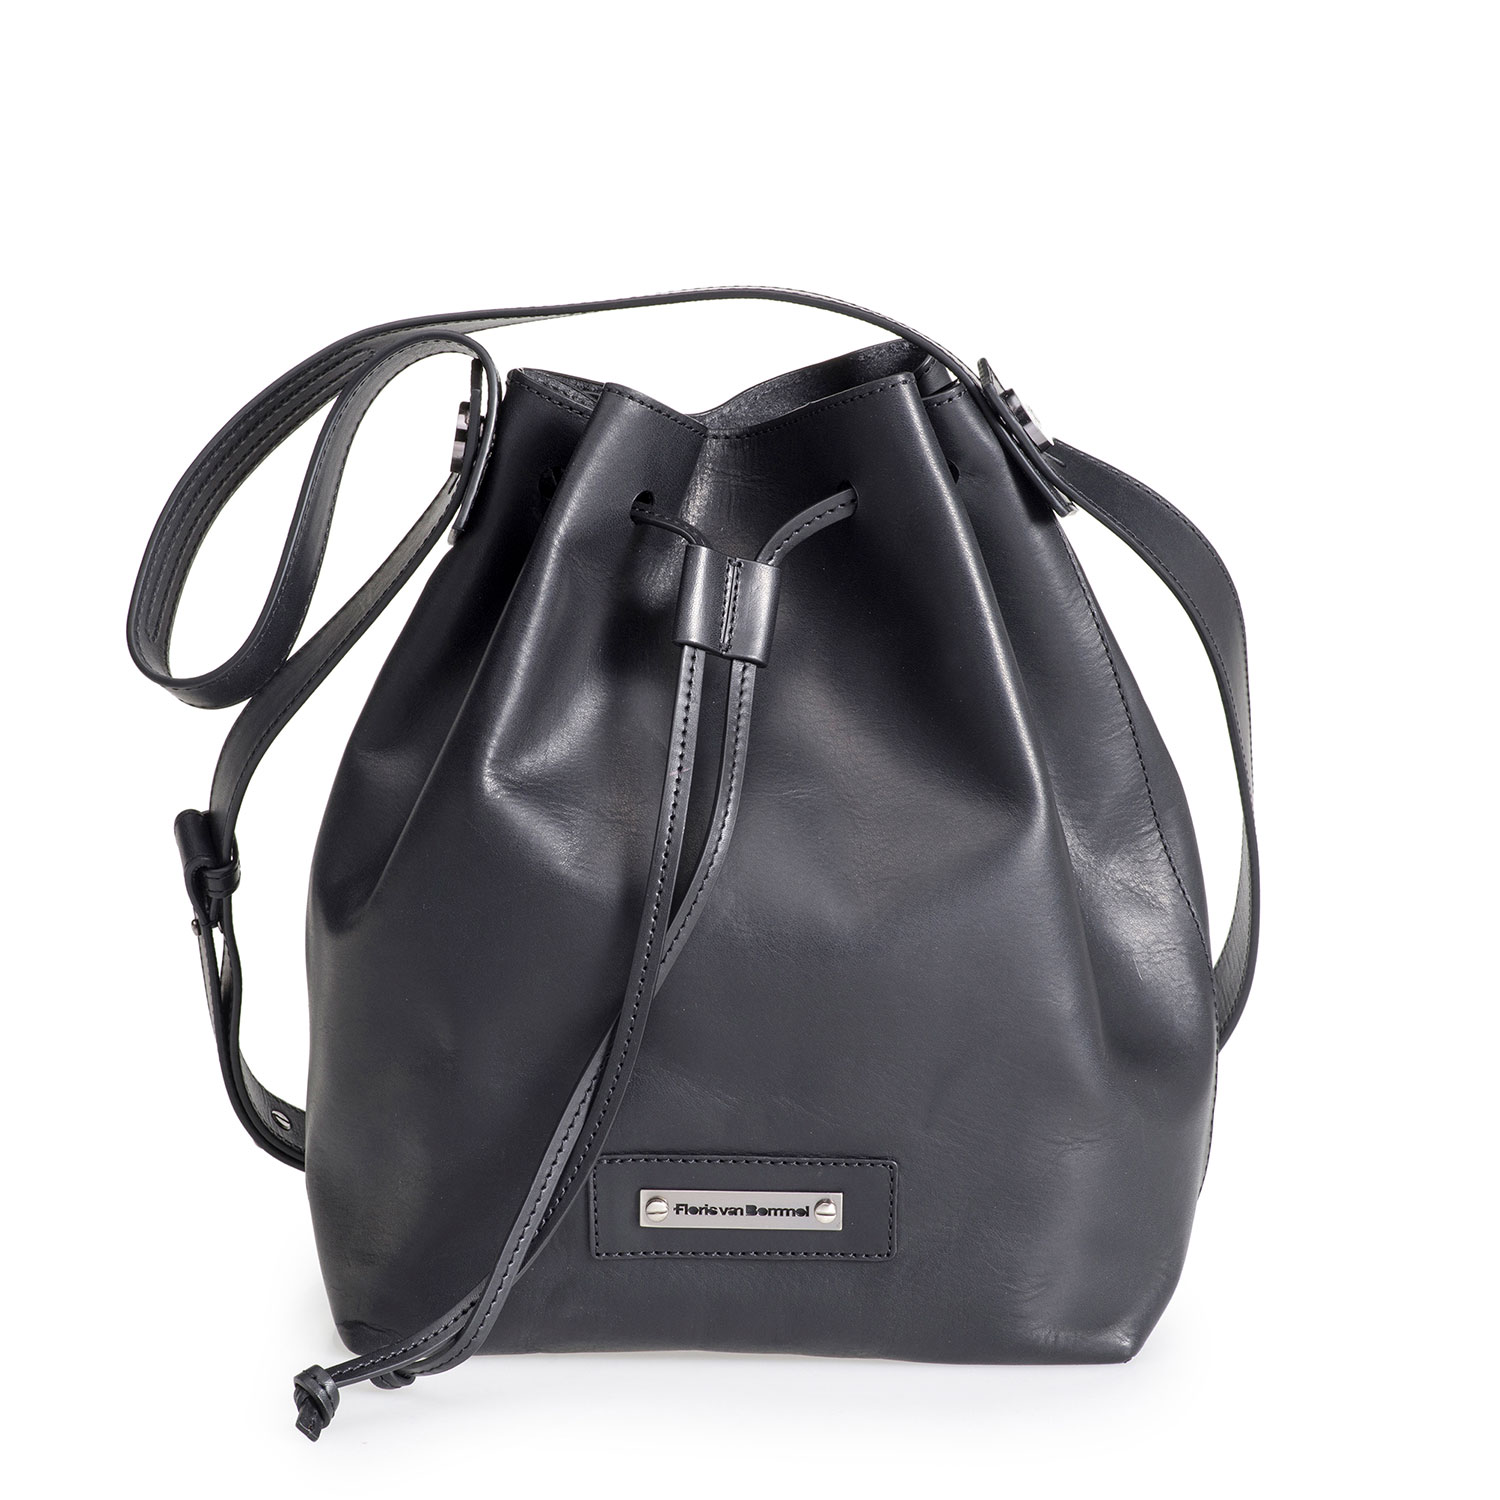 89007/00 - Black leather bucket bag